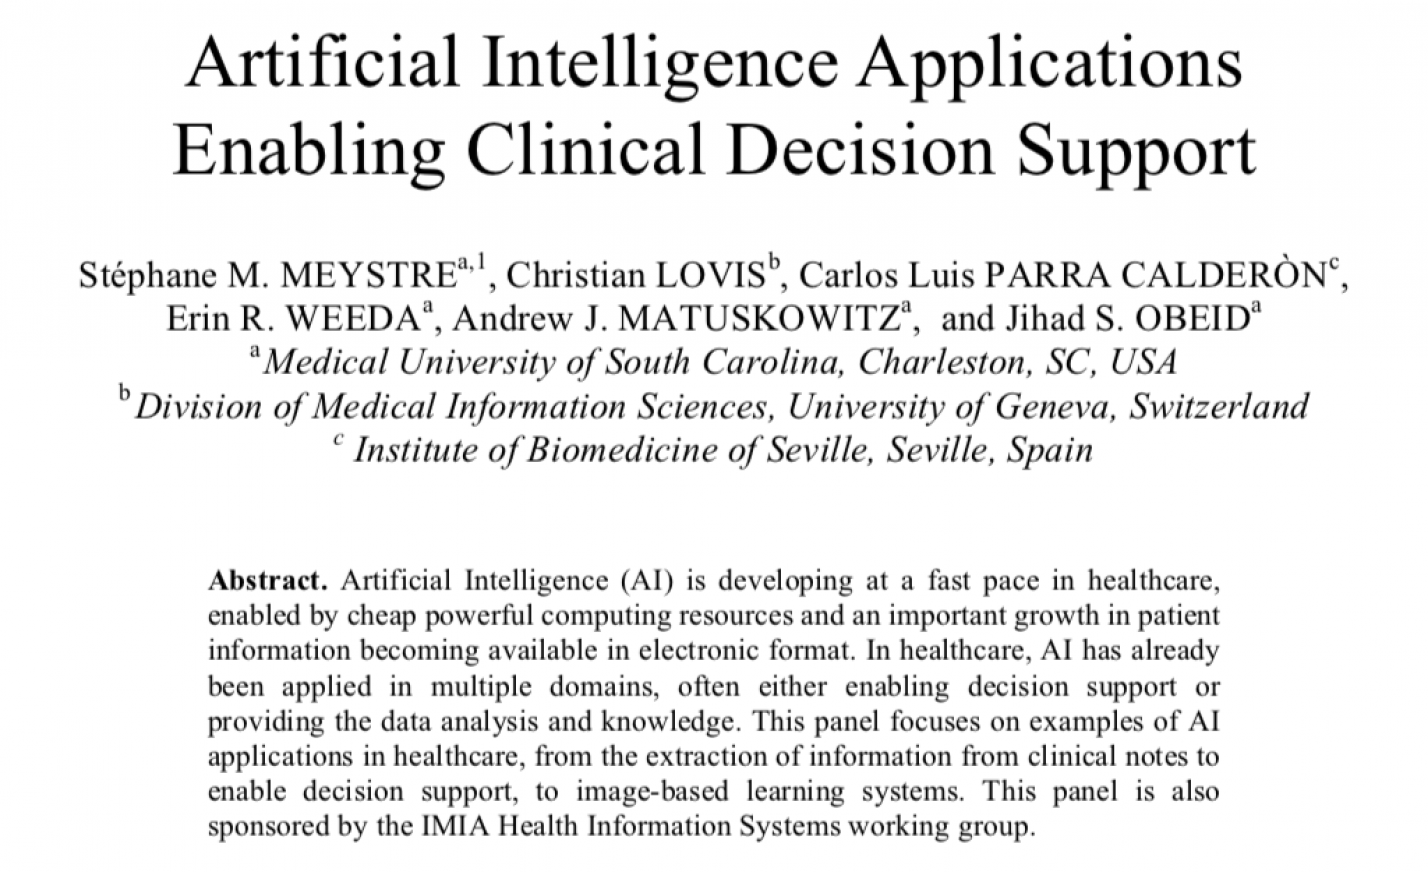 Artificial Intelligence Applications Enabling Clinical Decision Support